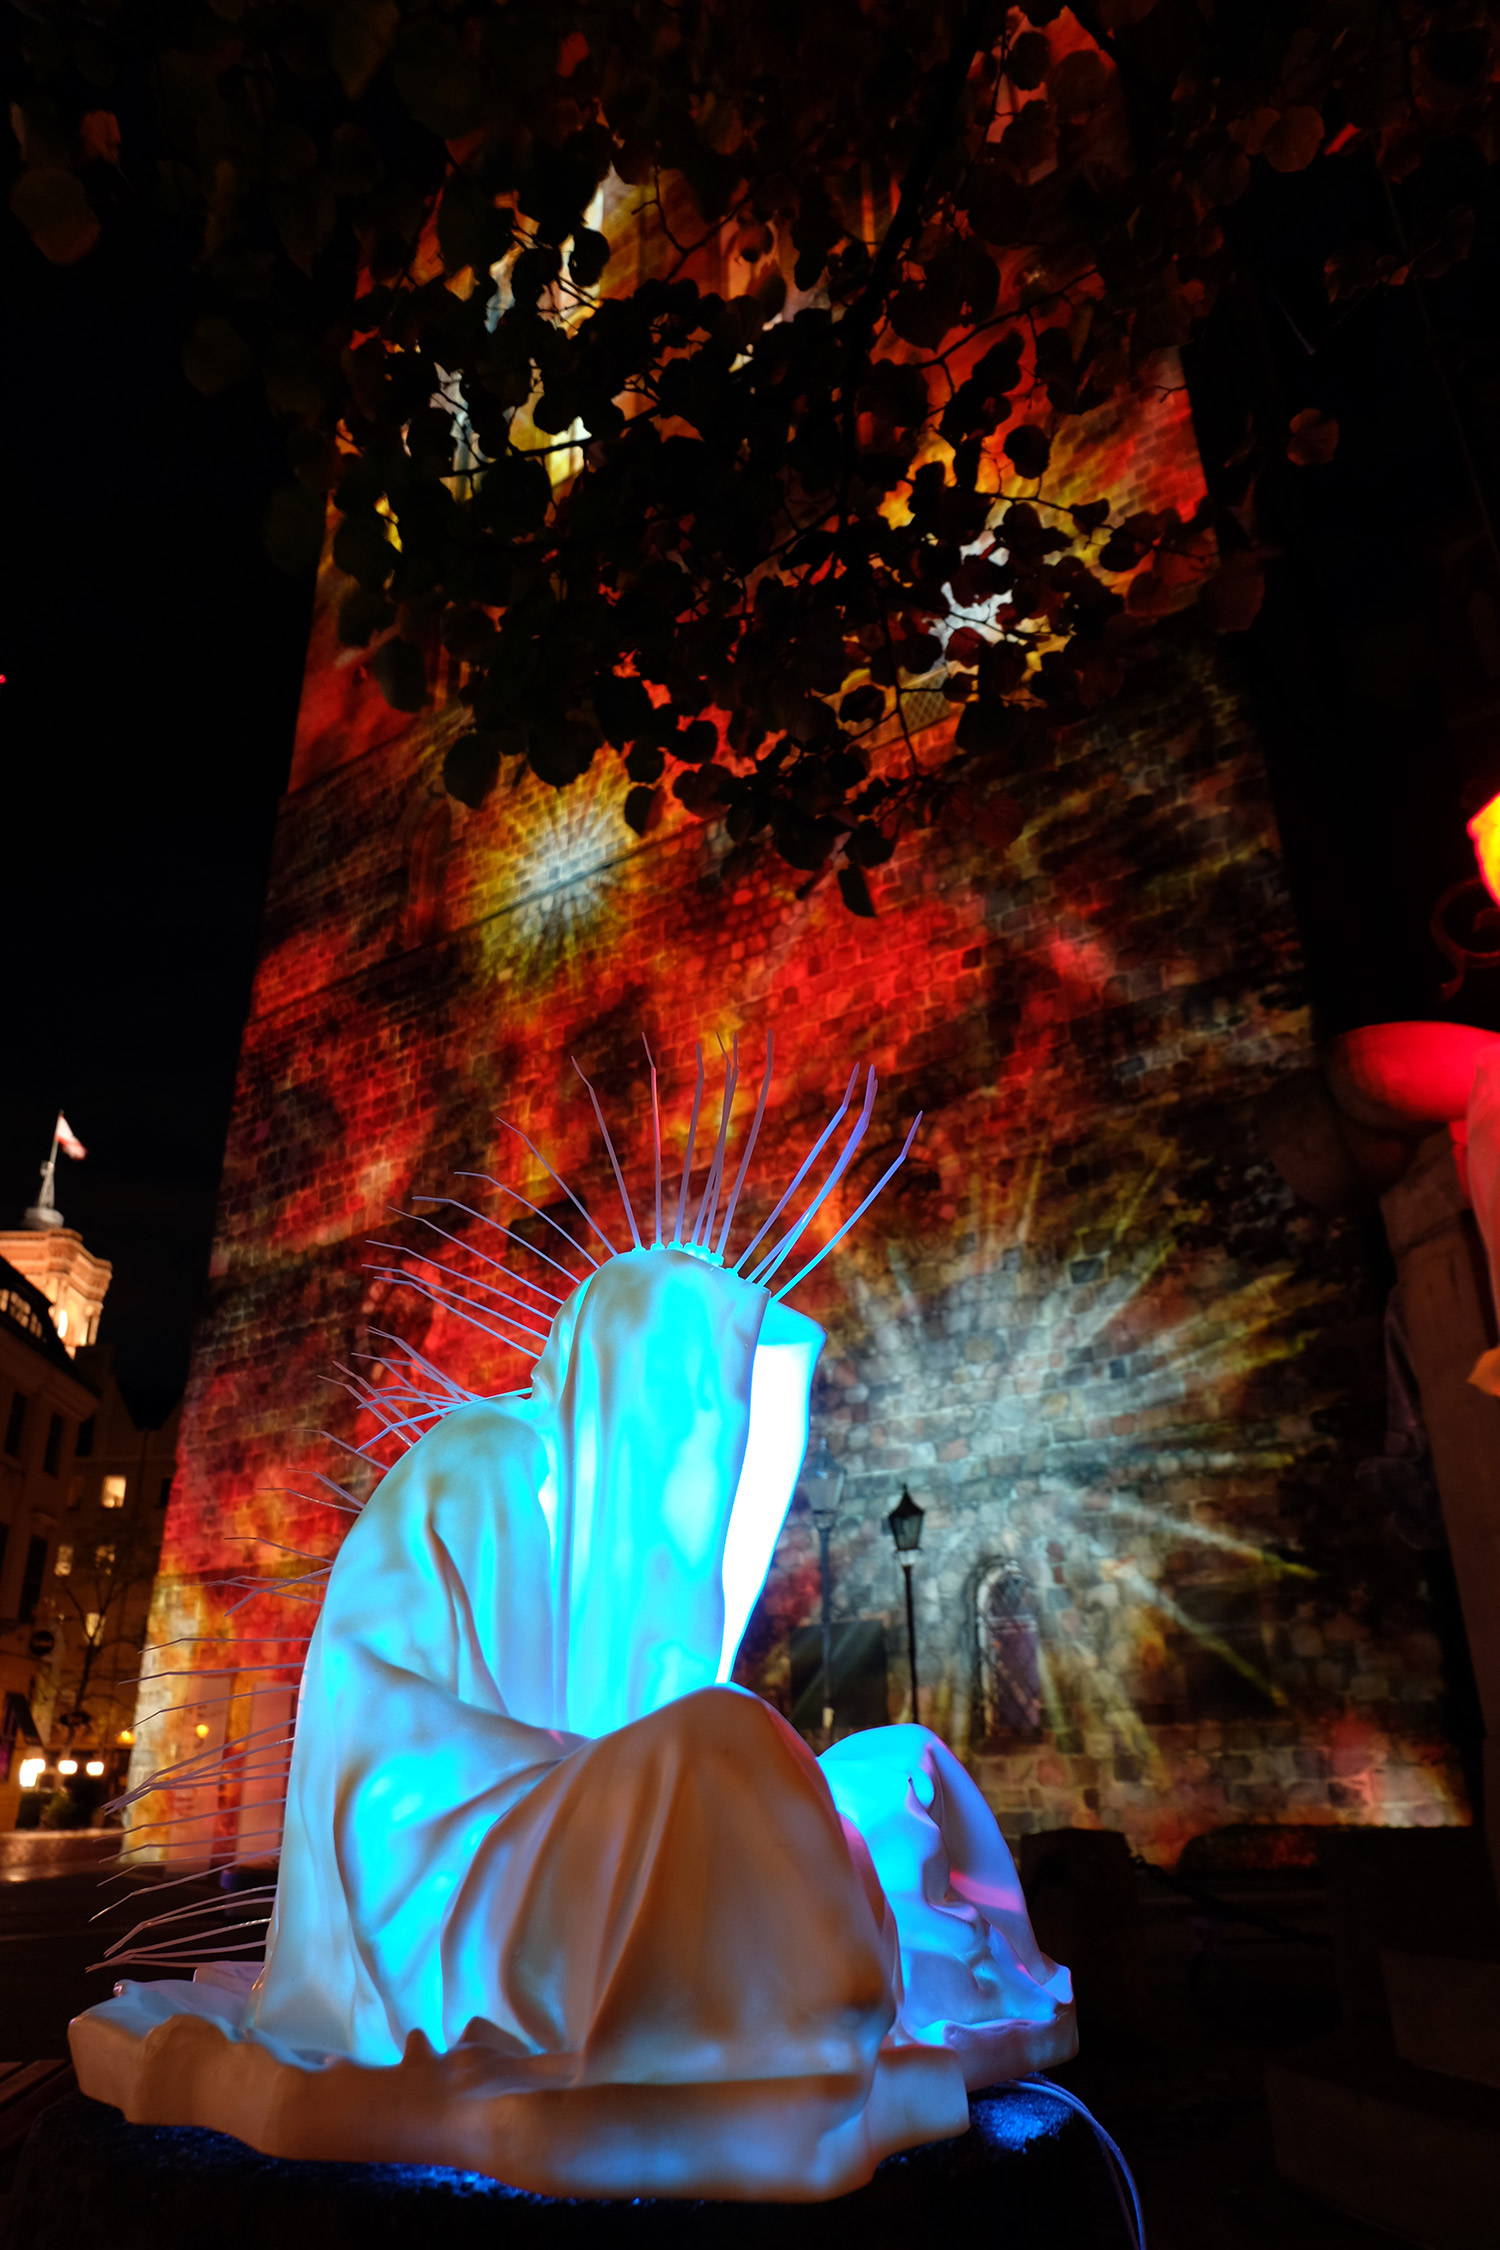 festival-of-lights-berlin-light-art-show-fine-arts-contemporary-art-design-modern-sculpture-statue-ghost-faceless-glow-lumina-8970